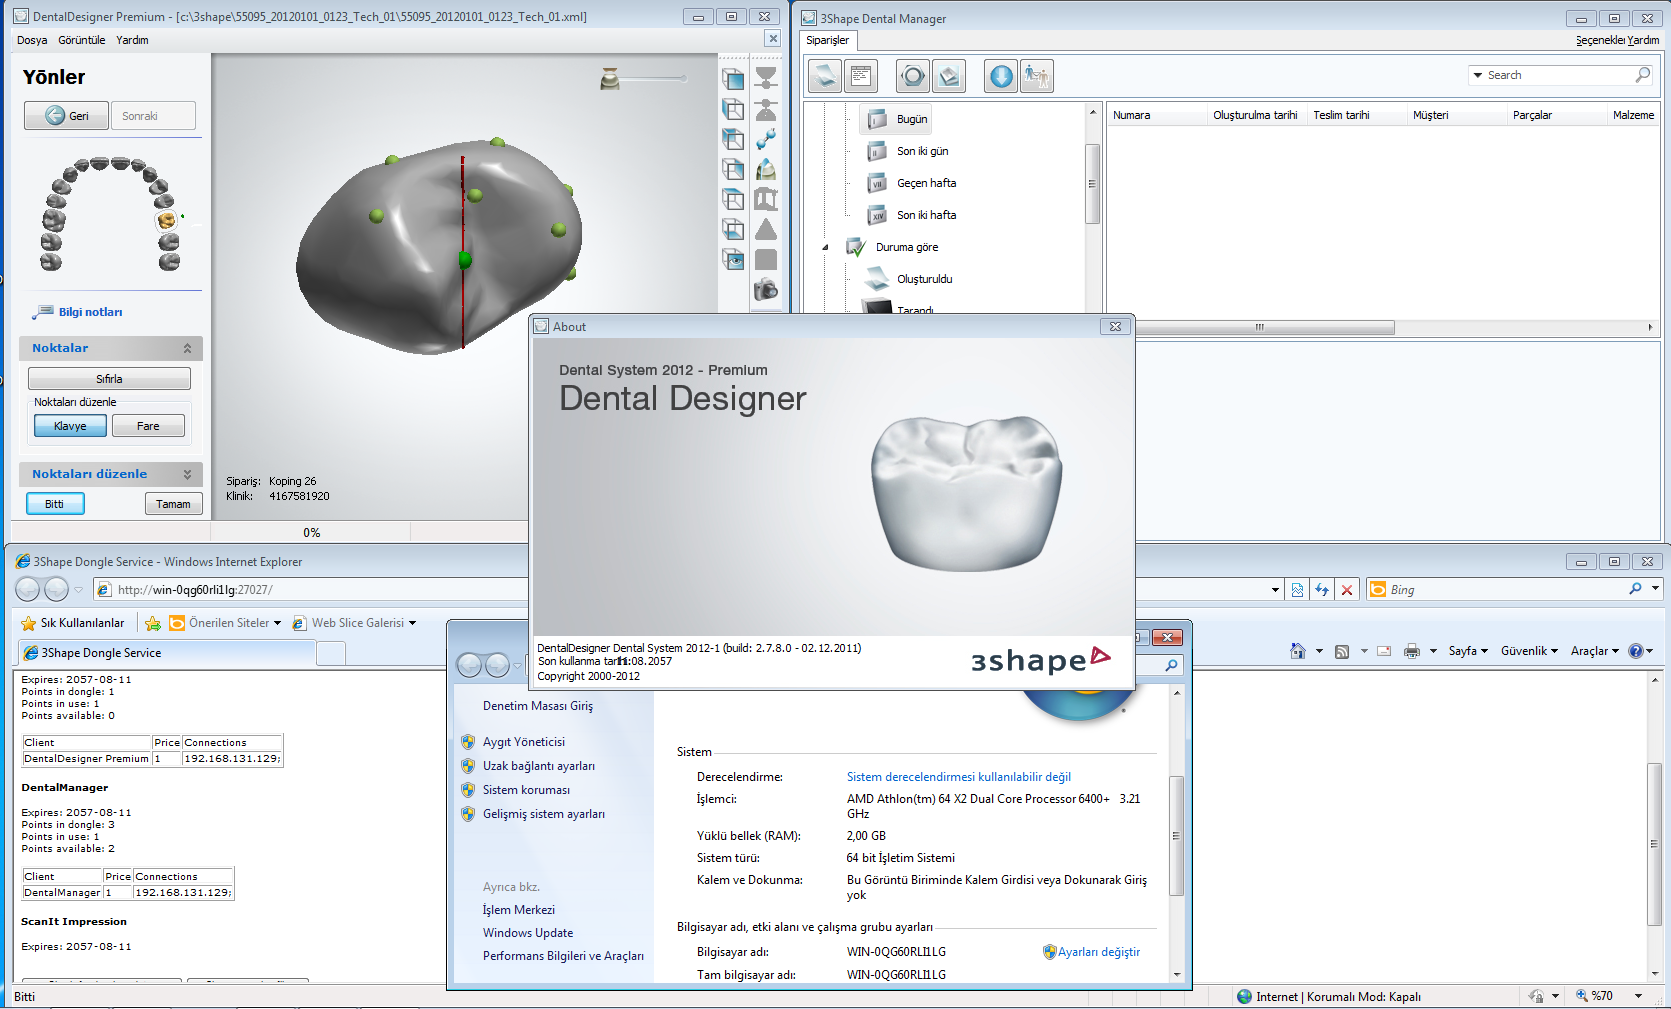 3Shape Dental System 2 7 2012 » VIP SOFTWARE